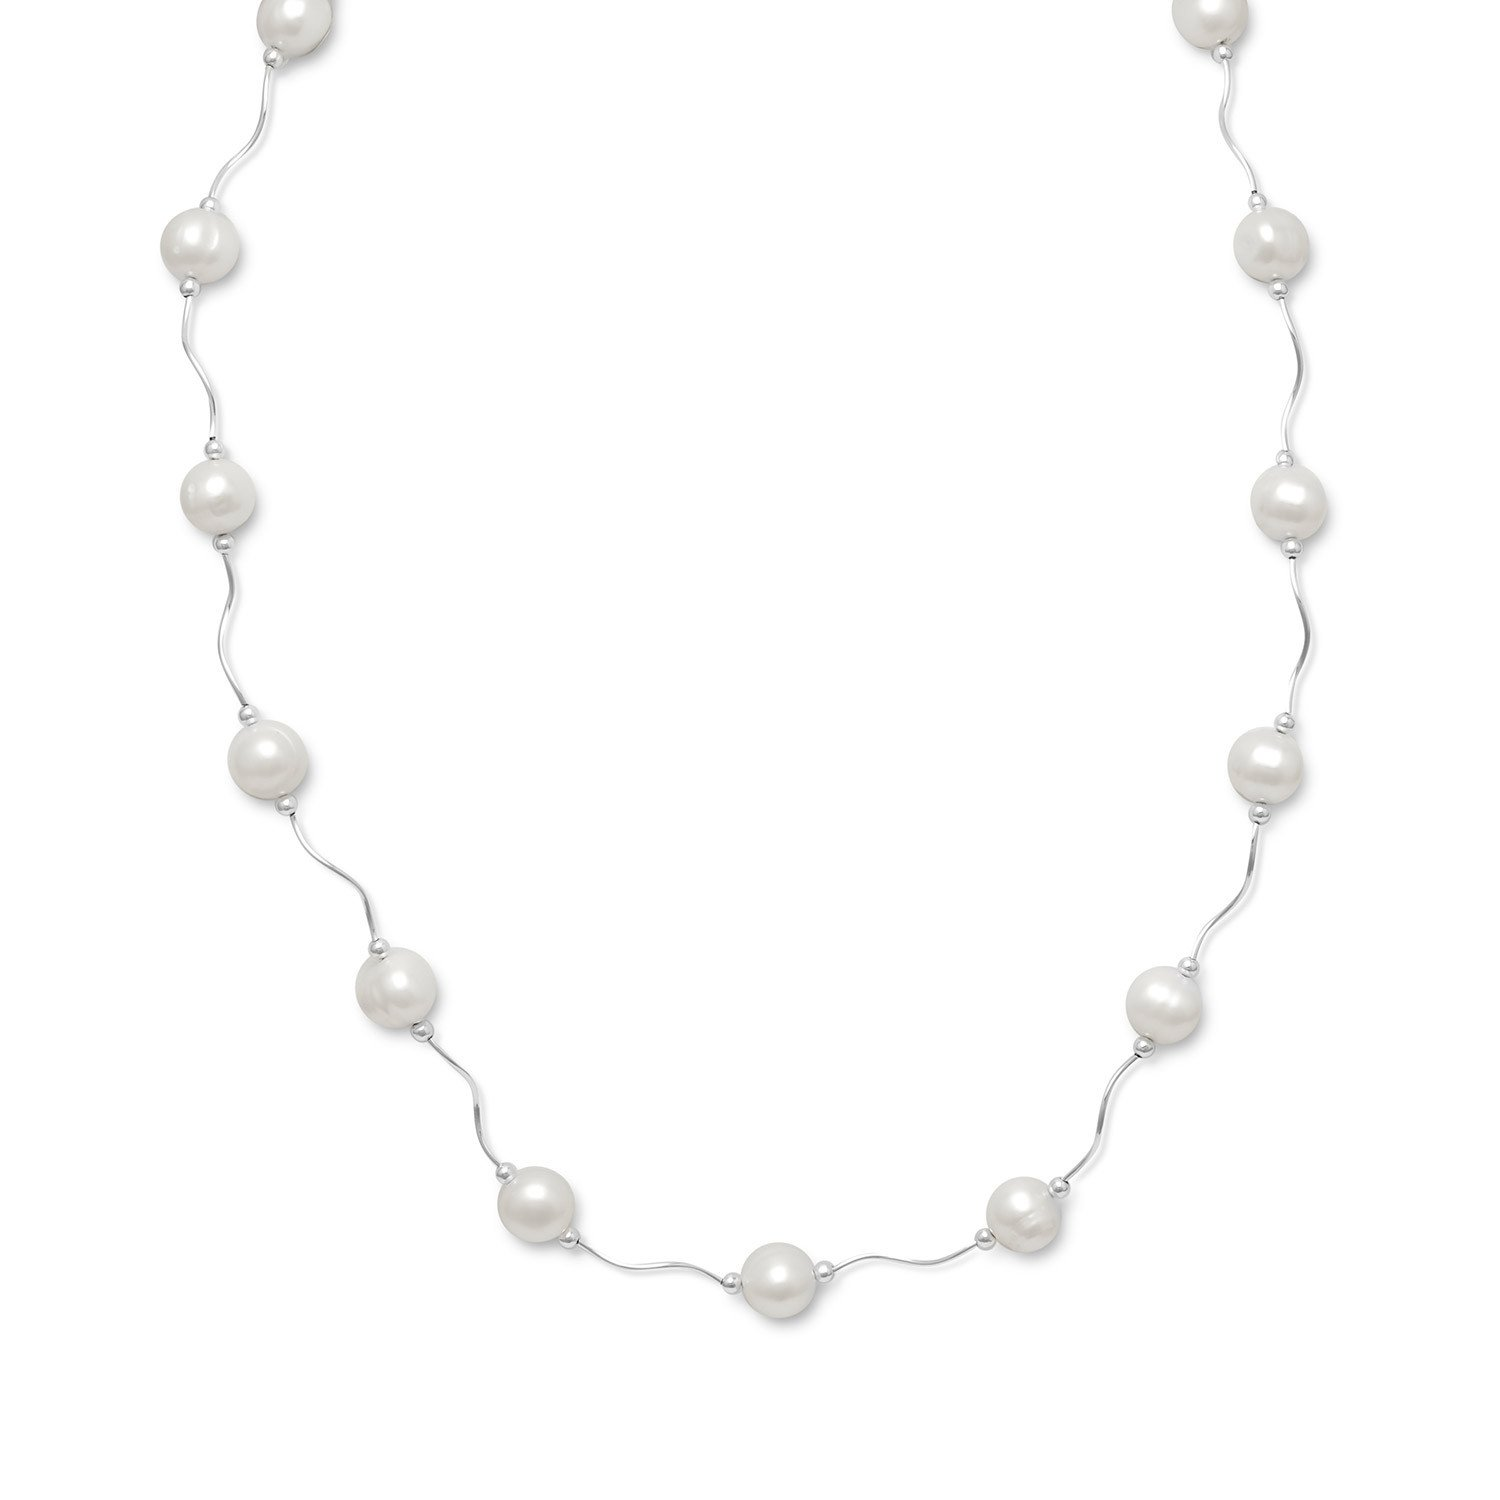 17″+2″ Extension Wave Design Necklace with Cultured Freshwater Pearls